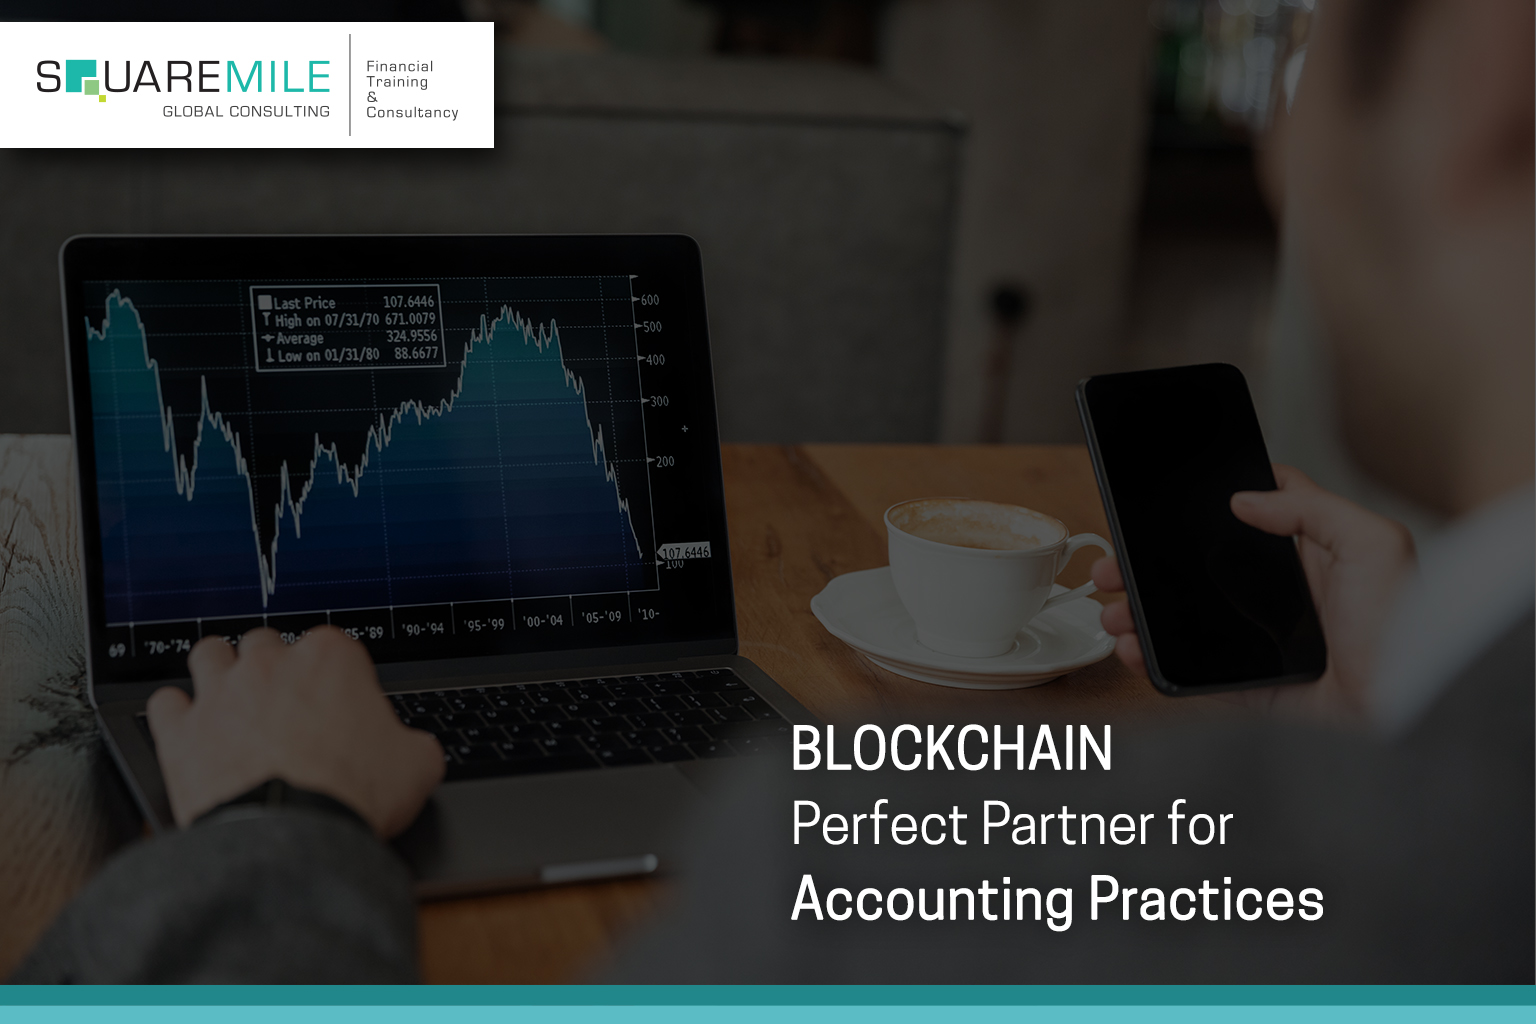 Blockchain: The Perfect Partner for Accounting Systems